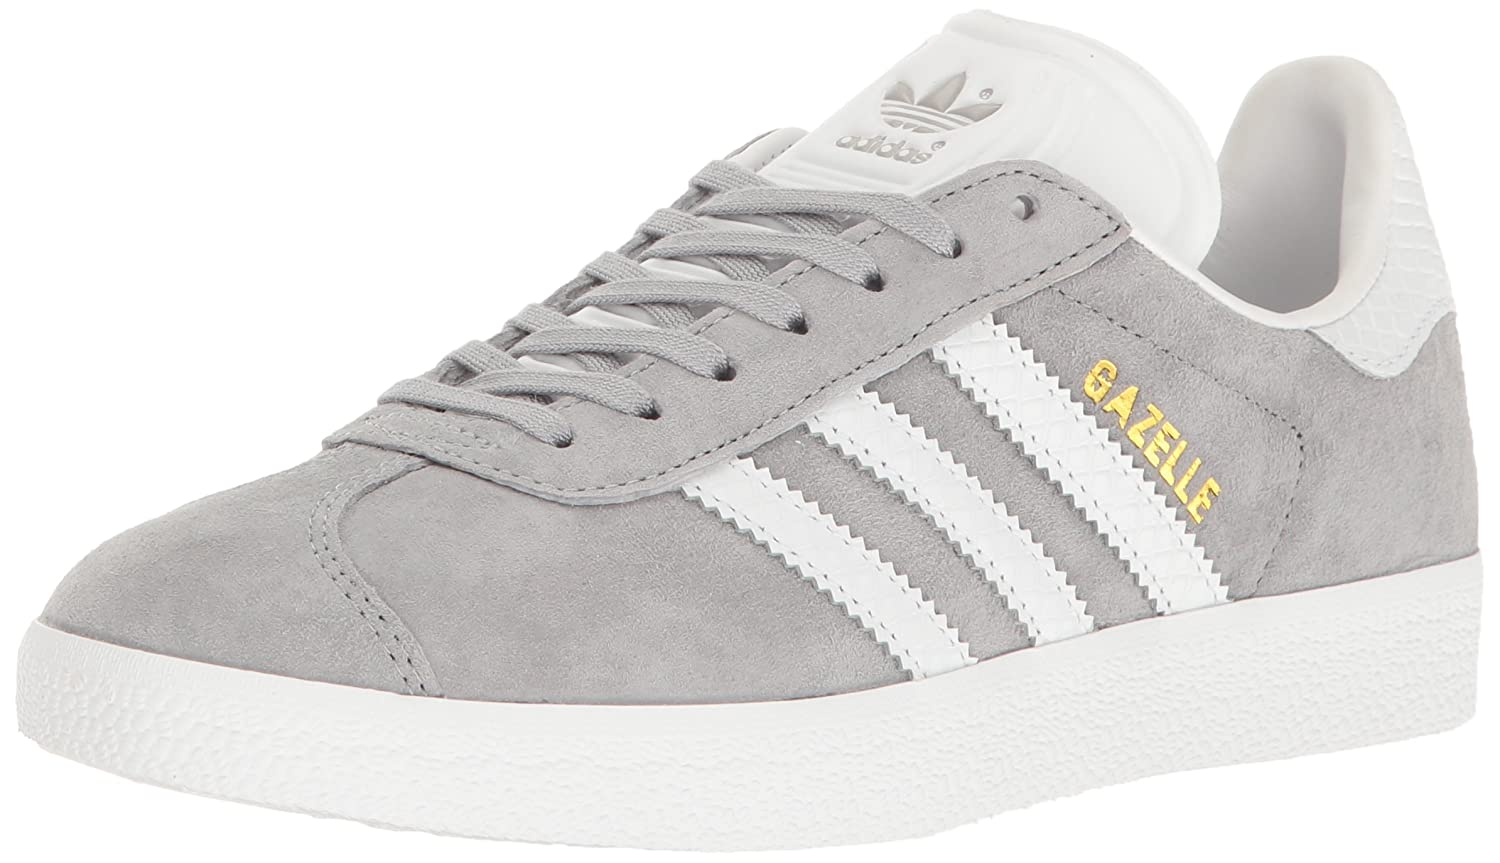 adidas Originals Women's Gazelle Fashion Sneakers B01HNFTV2W 8.5 M US|Mid Grey White/Metallic/Gold